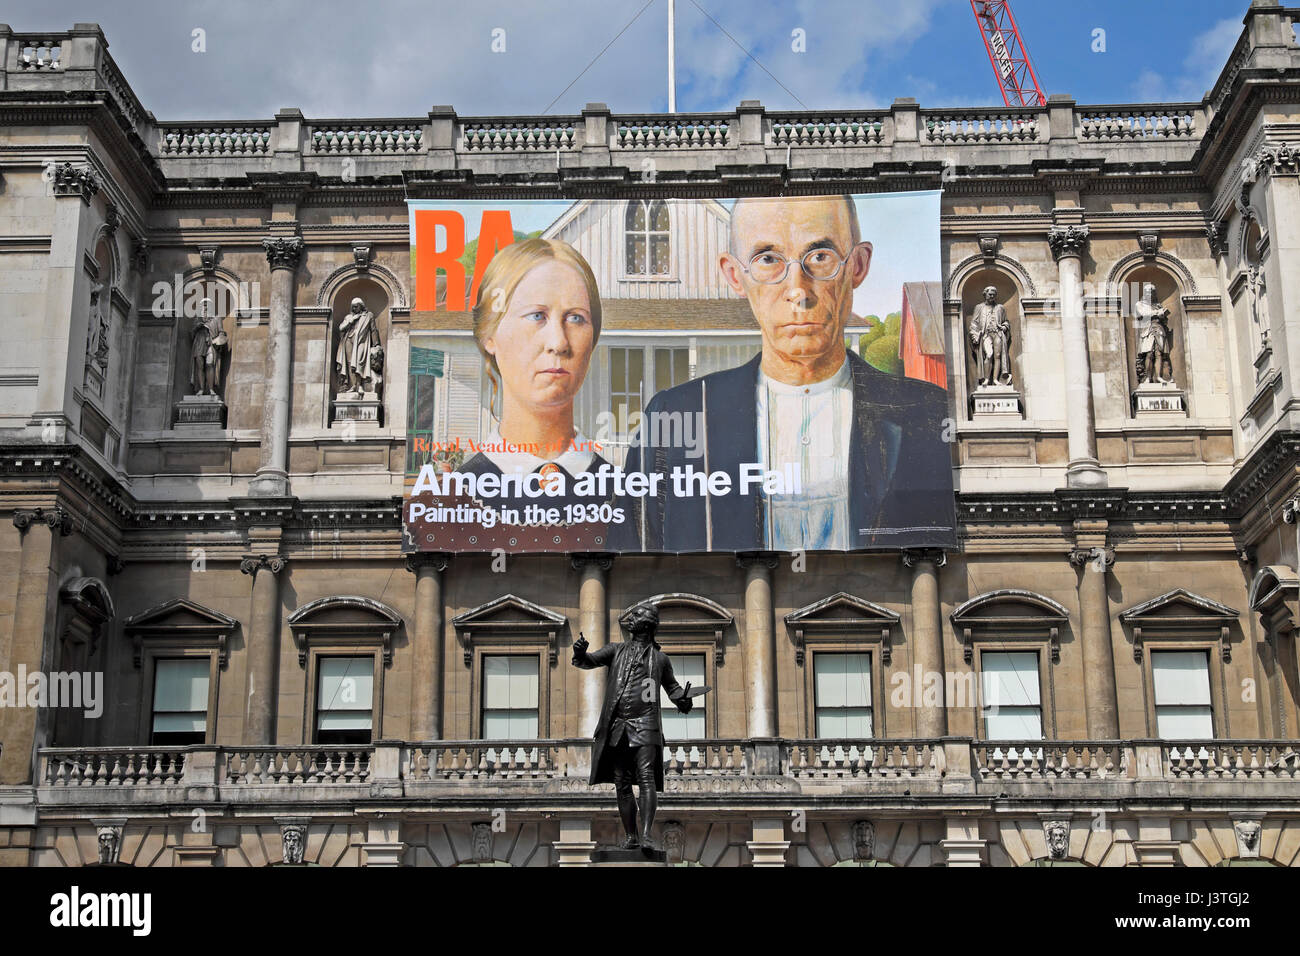 Royal Academy of Art poster  'America after the Fall' on the exterior facade of the building  April 2017 - Stock Image